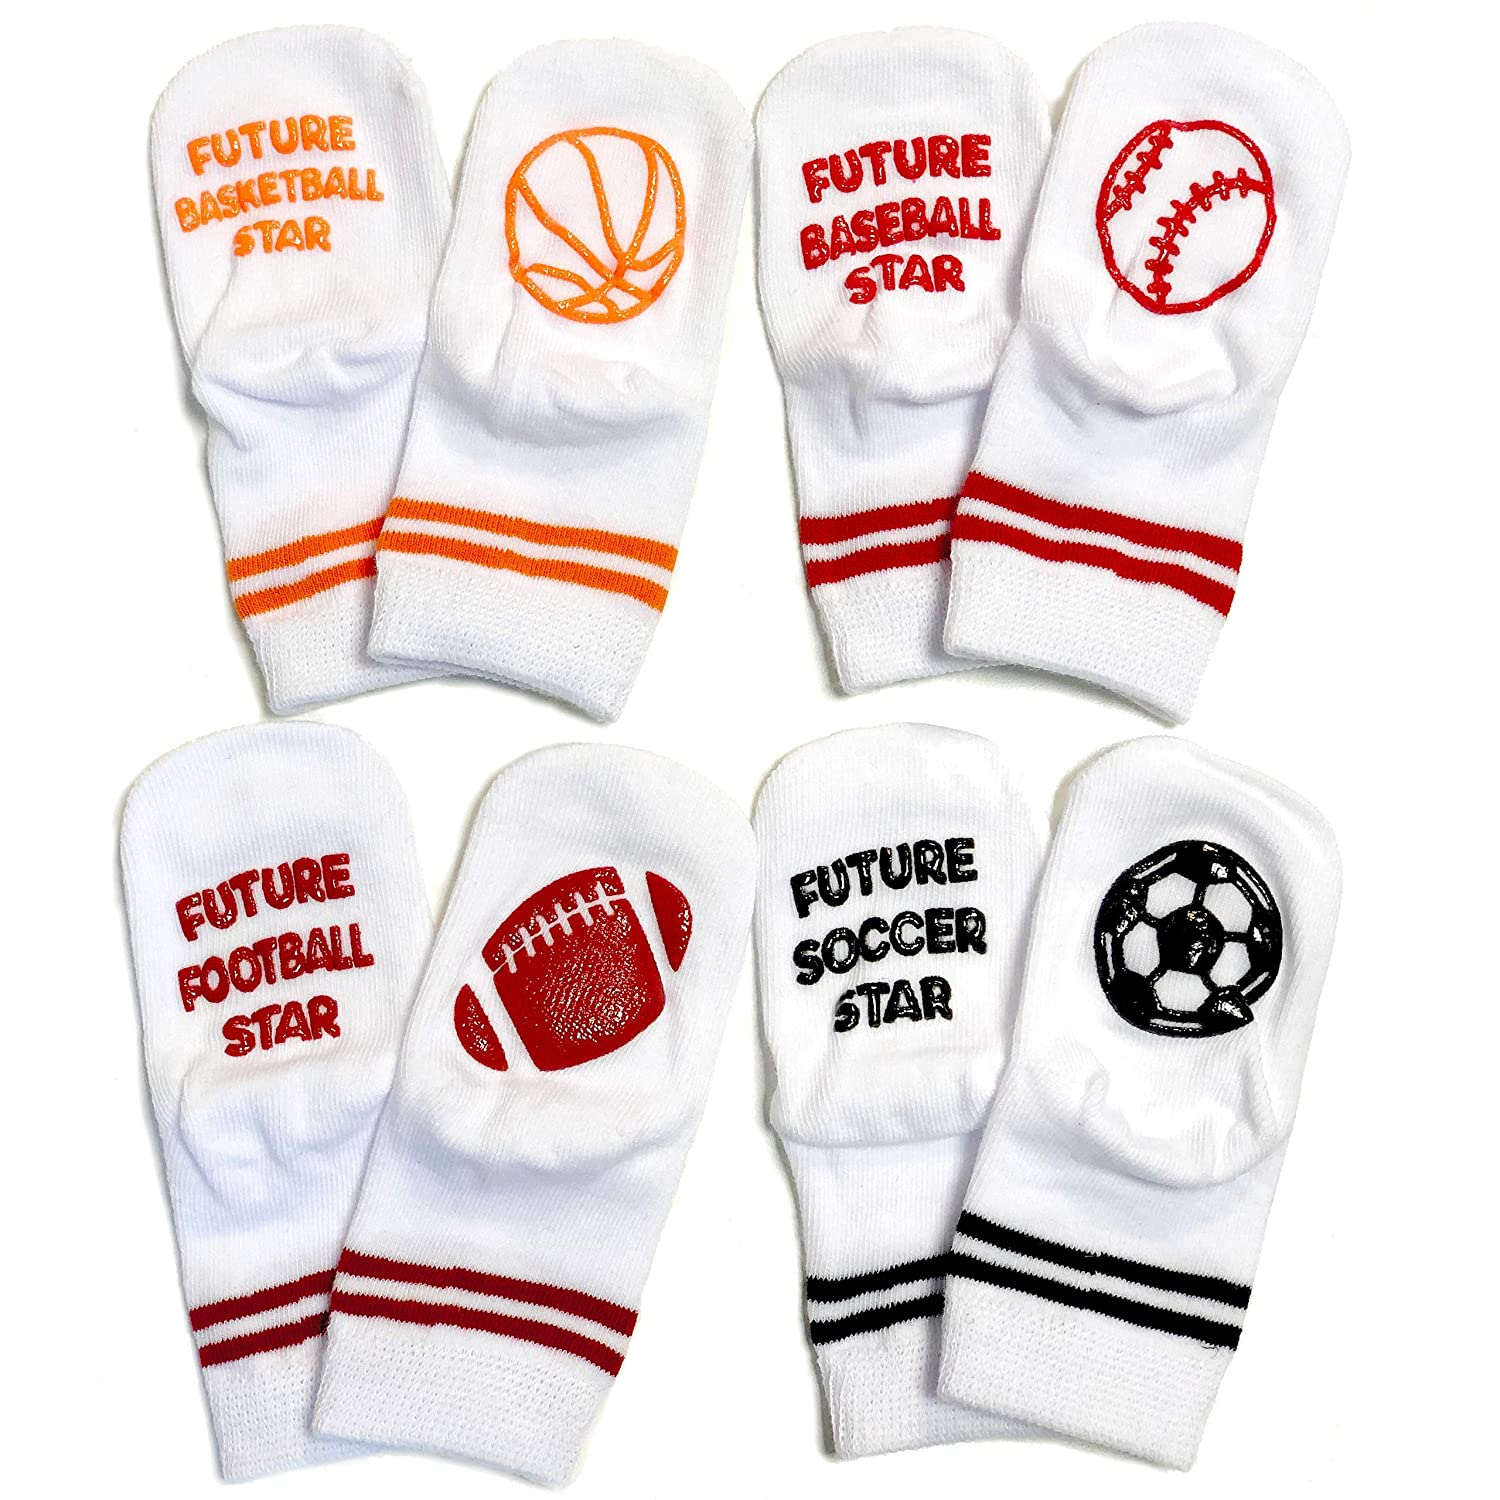 Baby Socks Gift Set - Unique Baby Shower or Newborn Gift - 4 Pairs of Cute Baby Future Sports Star Socks in Gift Box - Future - Football Star, Basketball Star, Soccer Star, Baseball Star